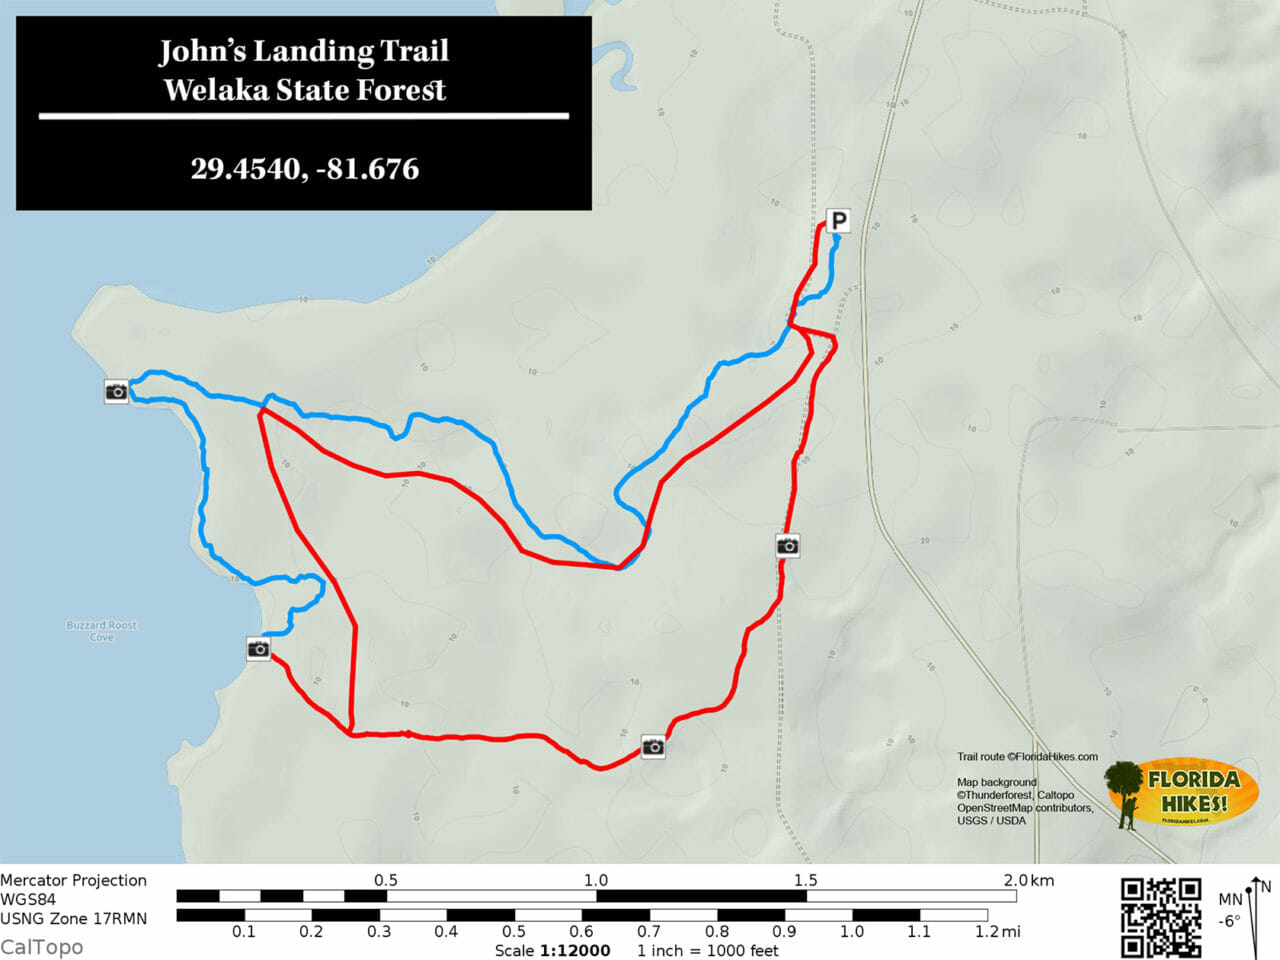 Johns Landing Trail map